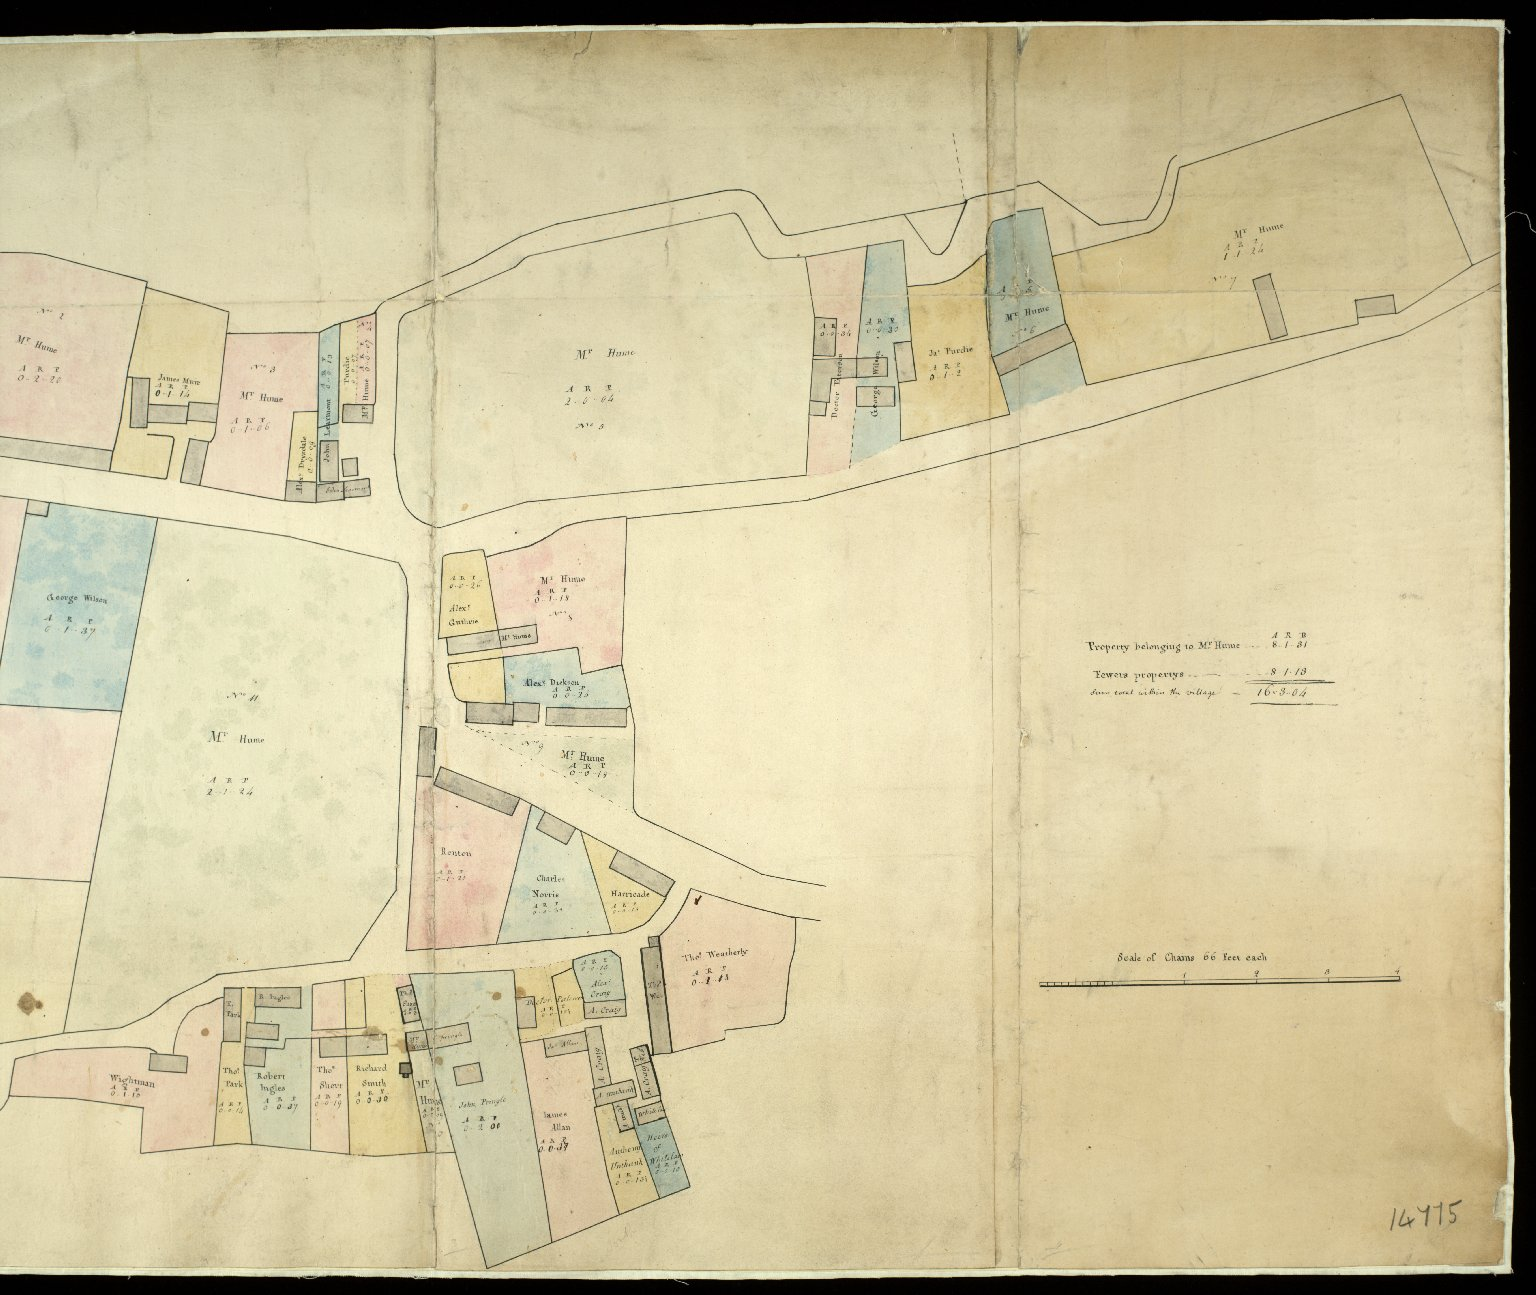 Plan of the Village of Paxton [2 of 2]